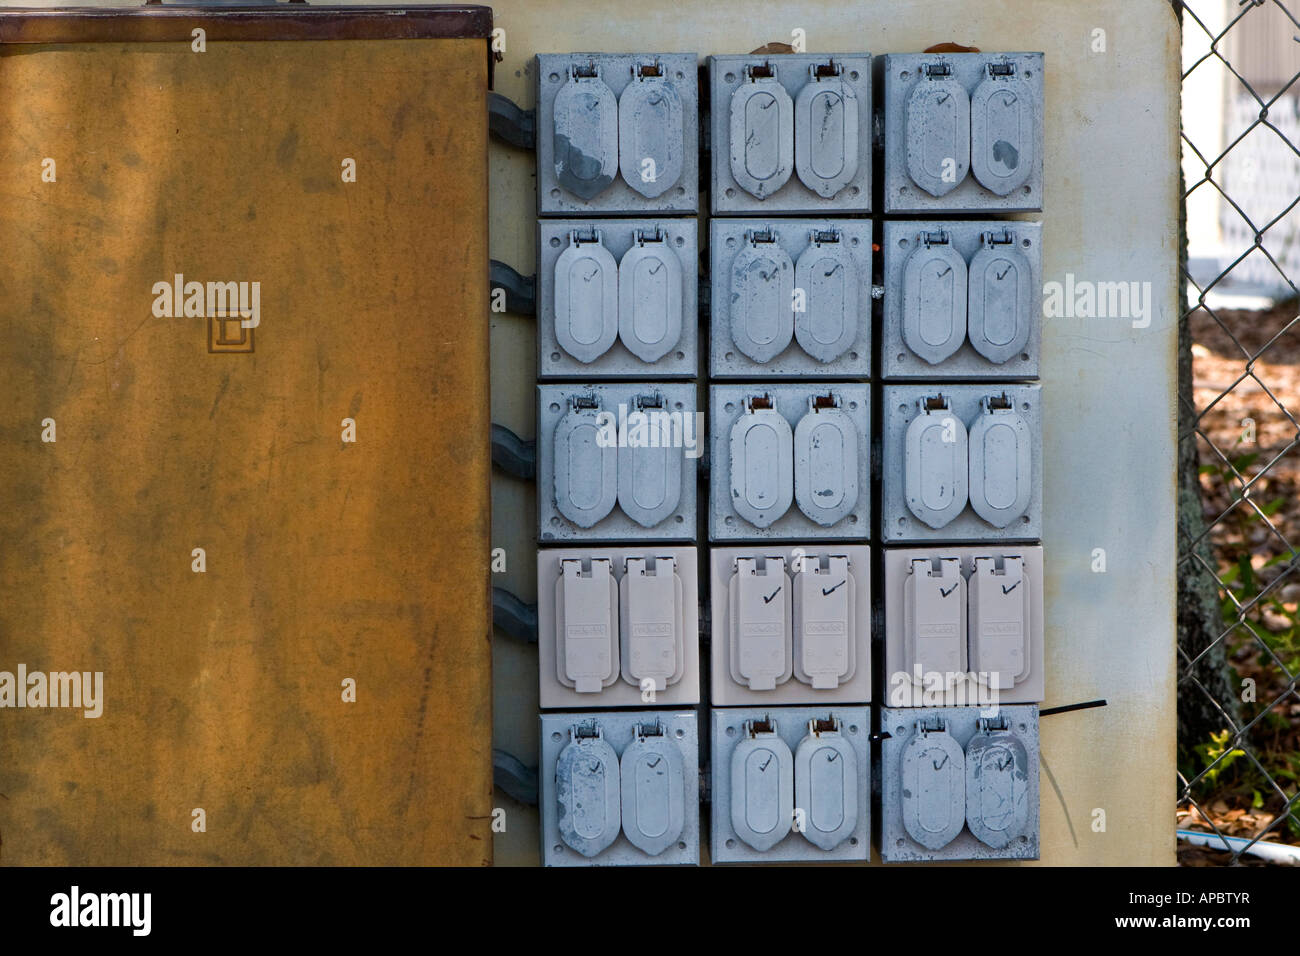 Electrical Box Stock Photos Images Alamy House Wiring Two Gang Switch Industrial With Multiple Outlets Image